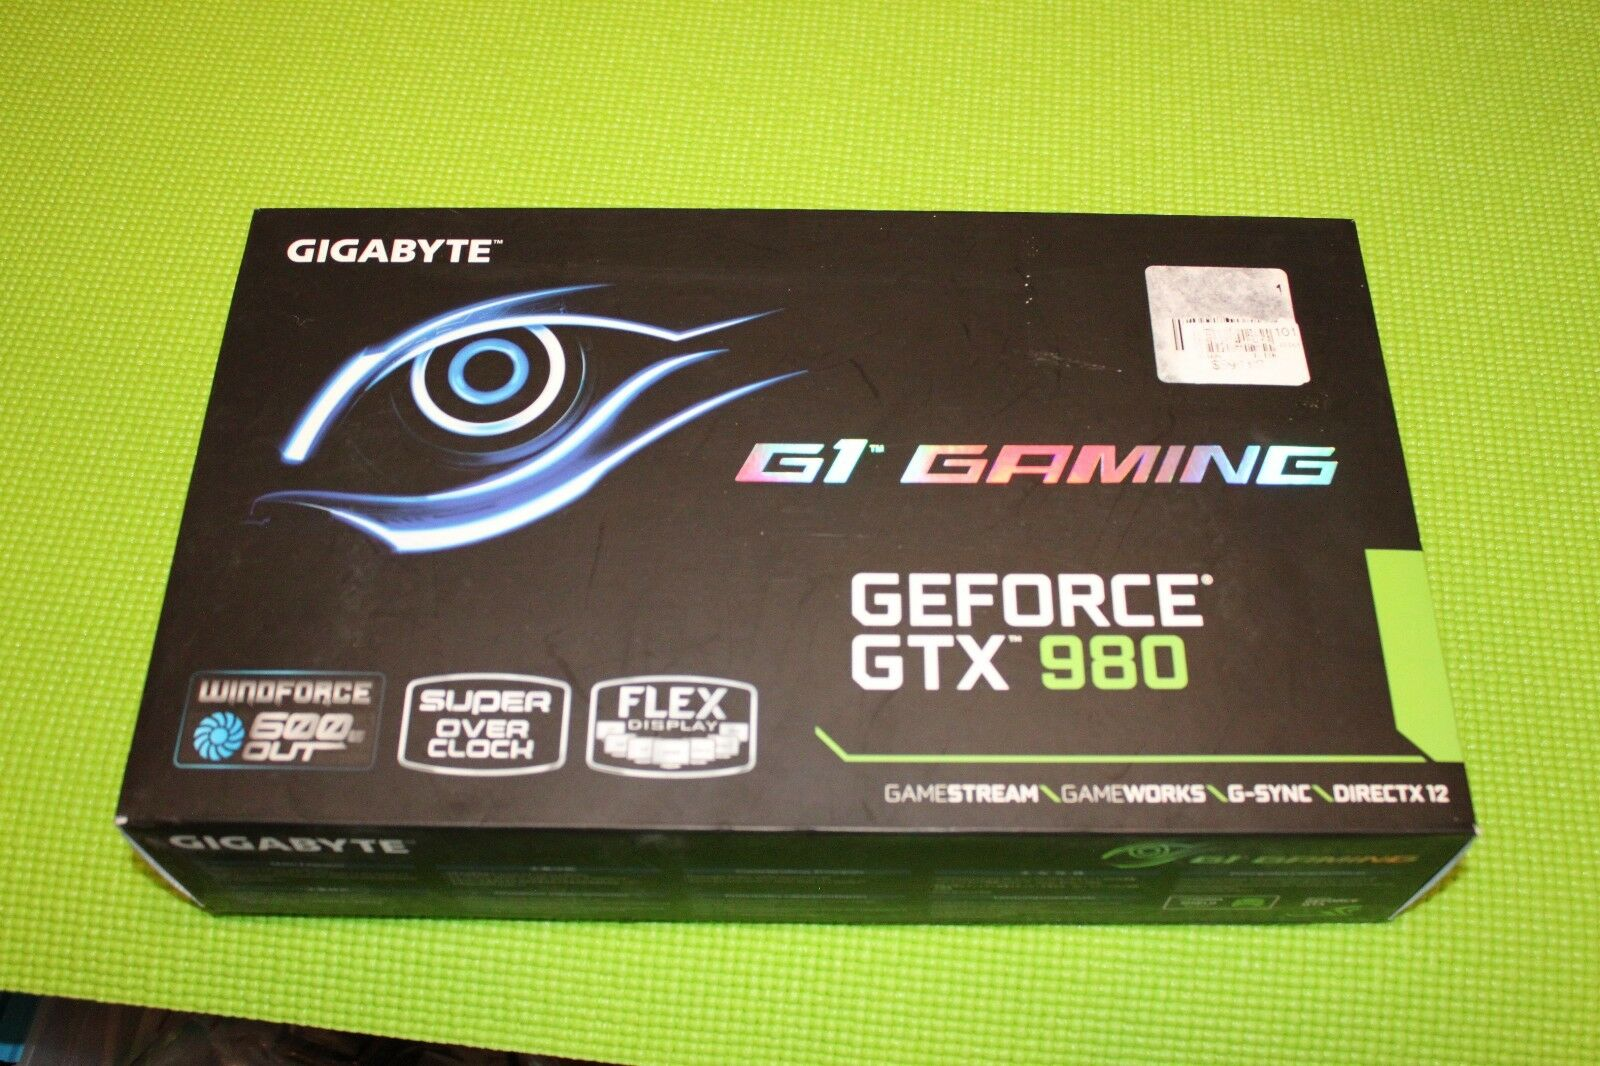 UPC 818313022097 - GIGABYTE GeForce GTX 980 Video Graphics Card